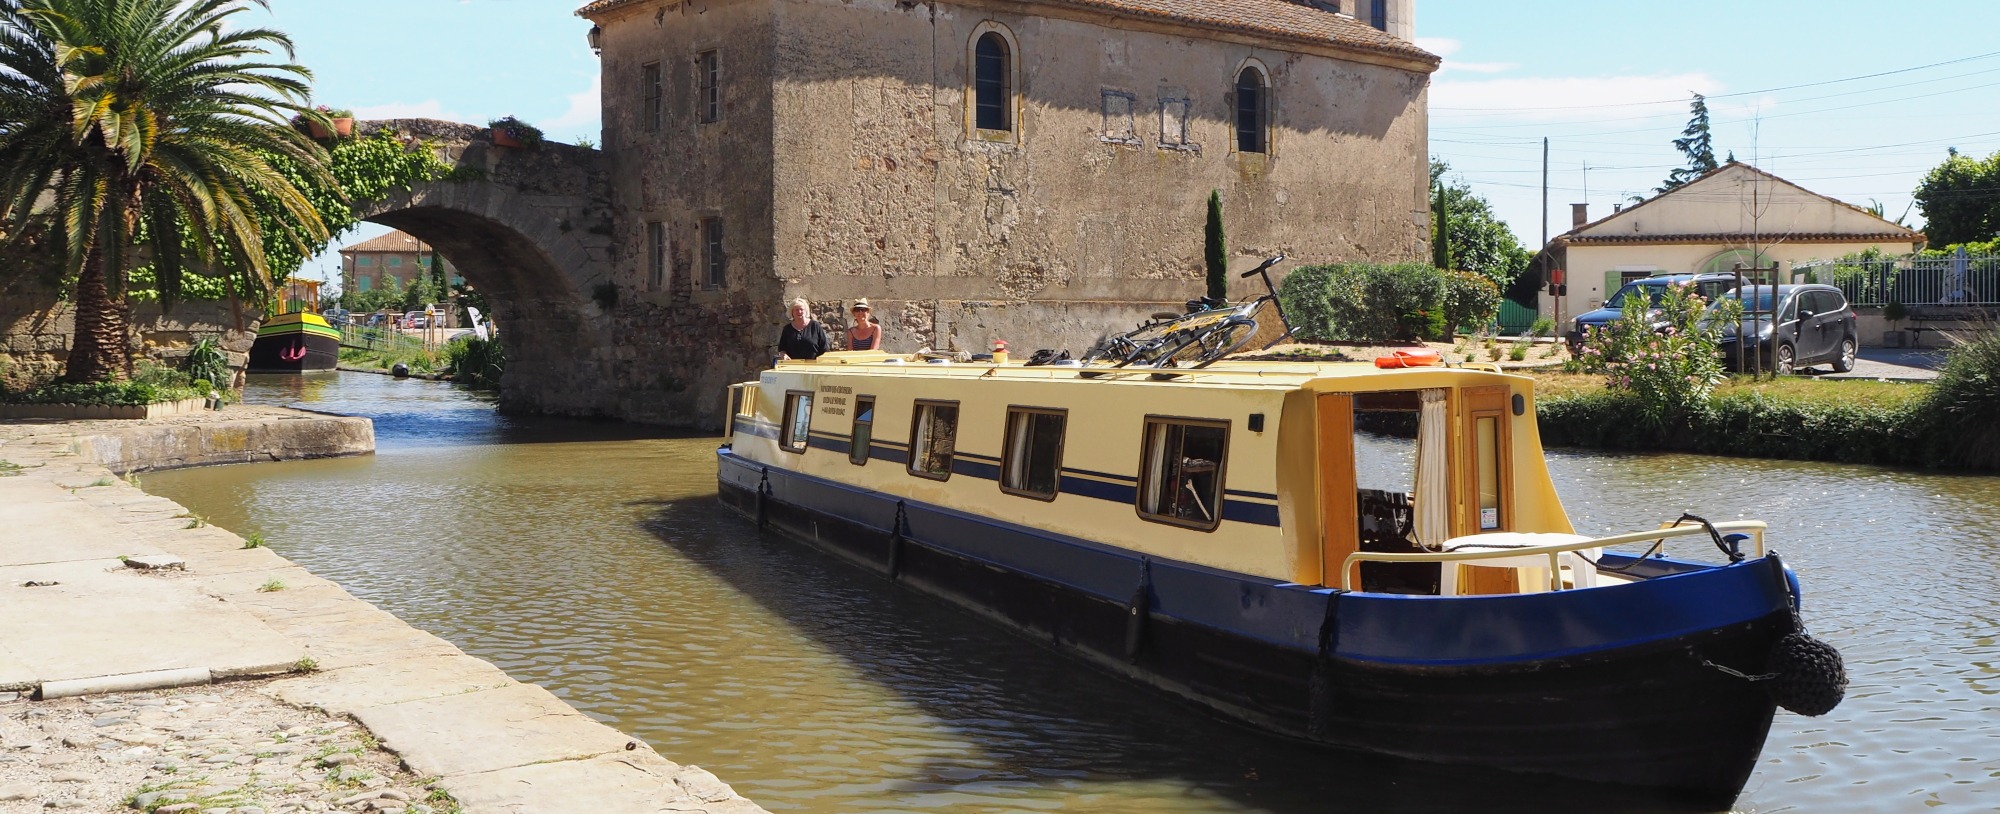 Our Boat on the Canal du Midi